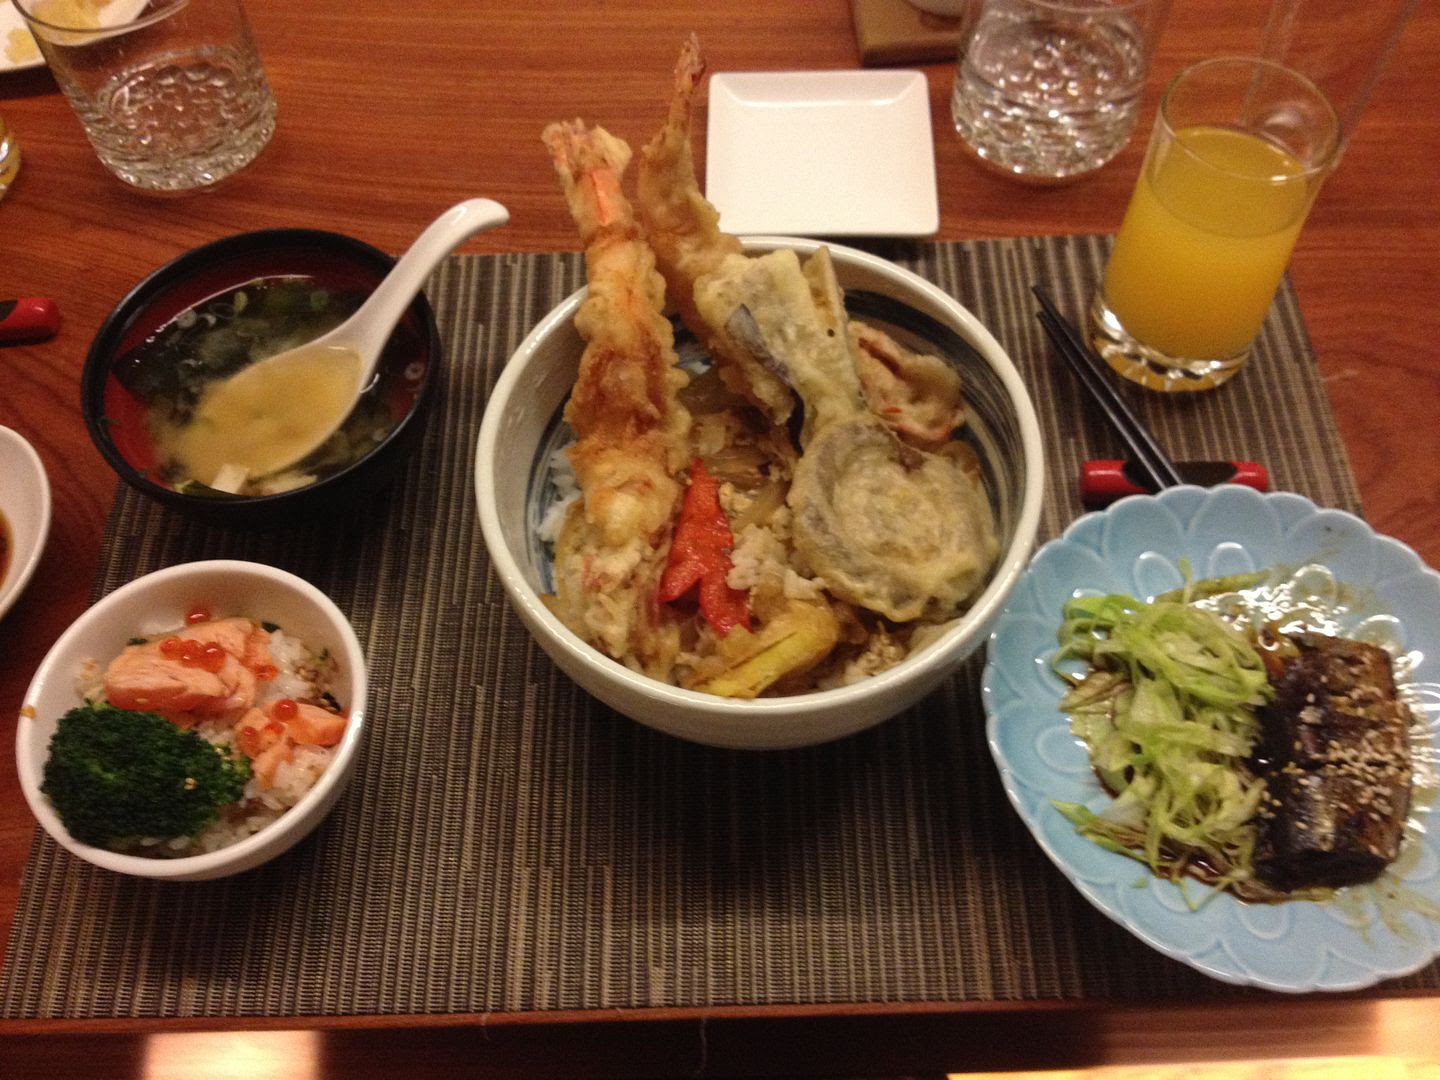 Food at Restaurant/Former House of Antique-Loving Friends photo 2013-12-26194550_zps4decb55b.jpg